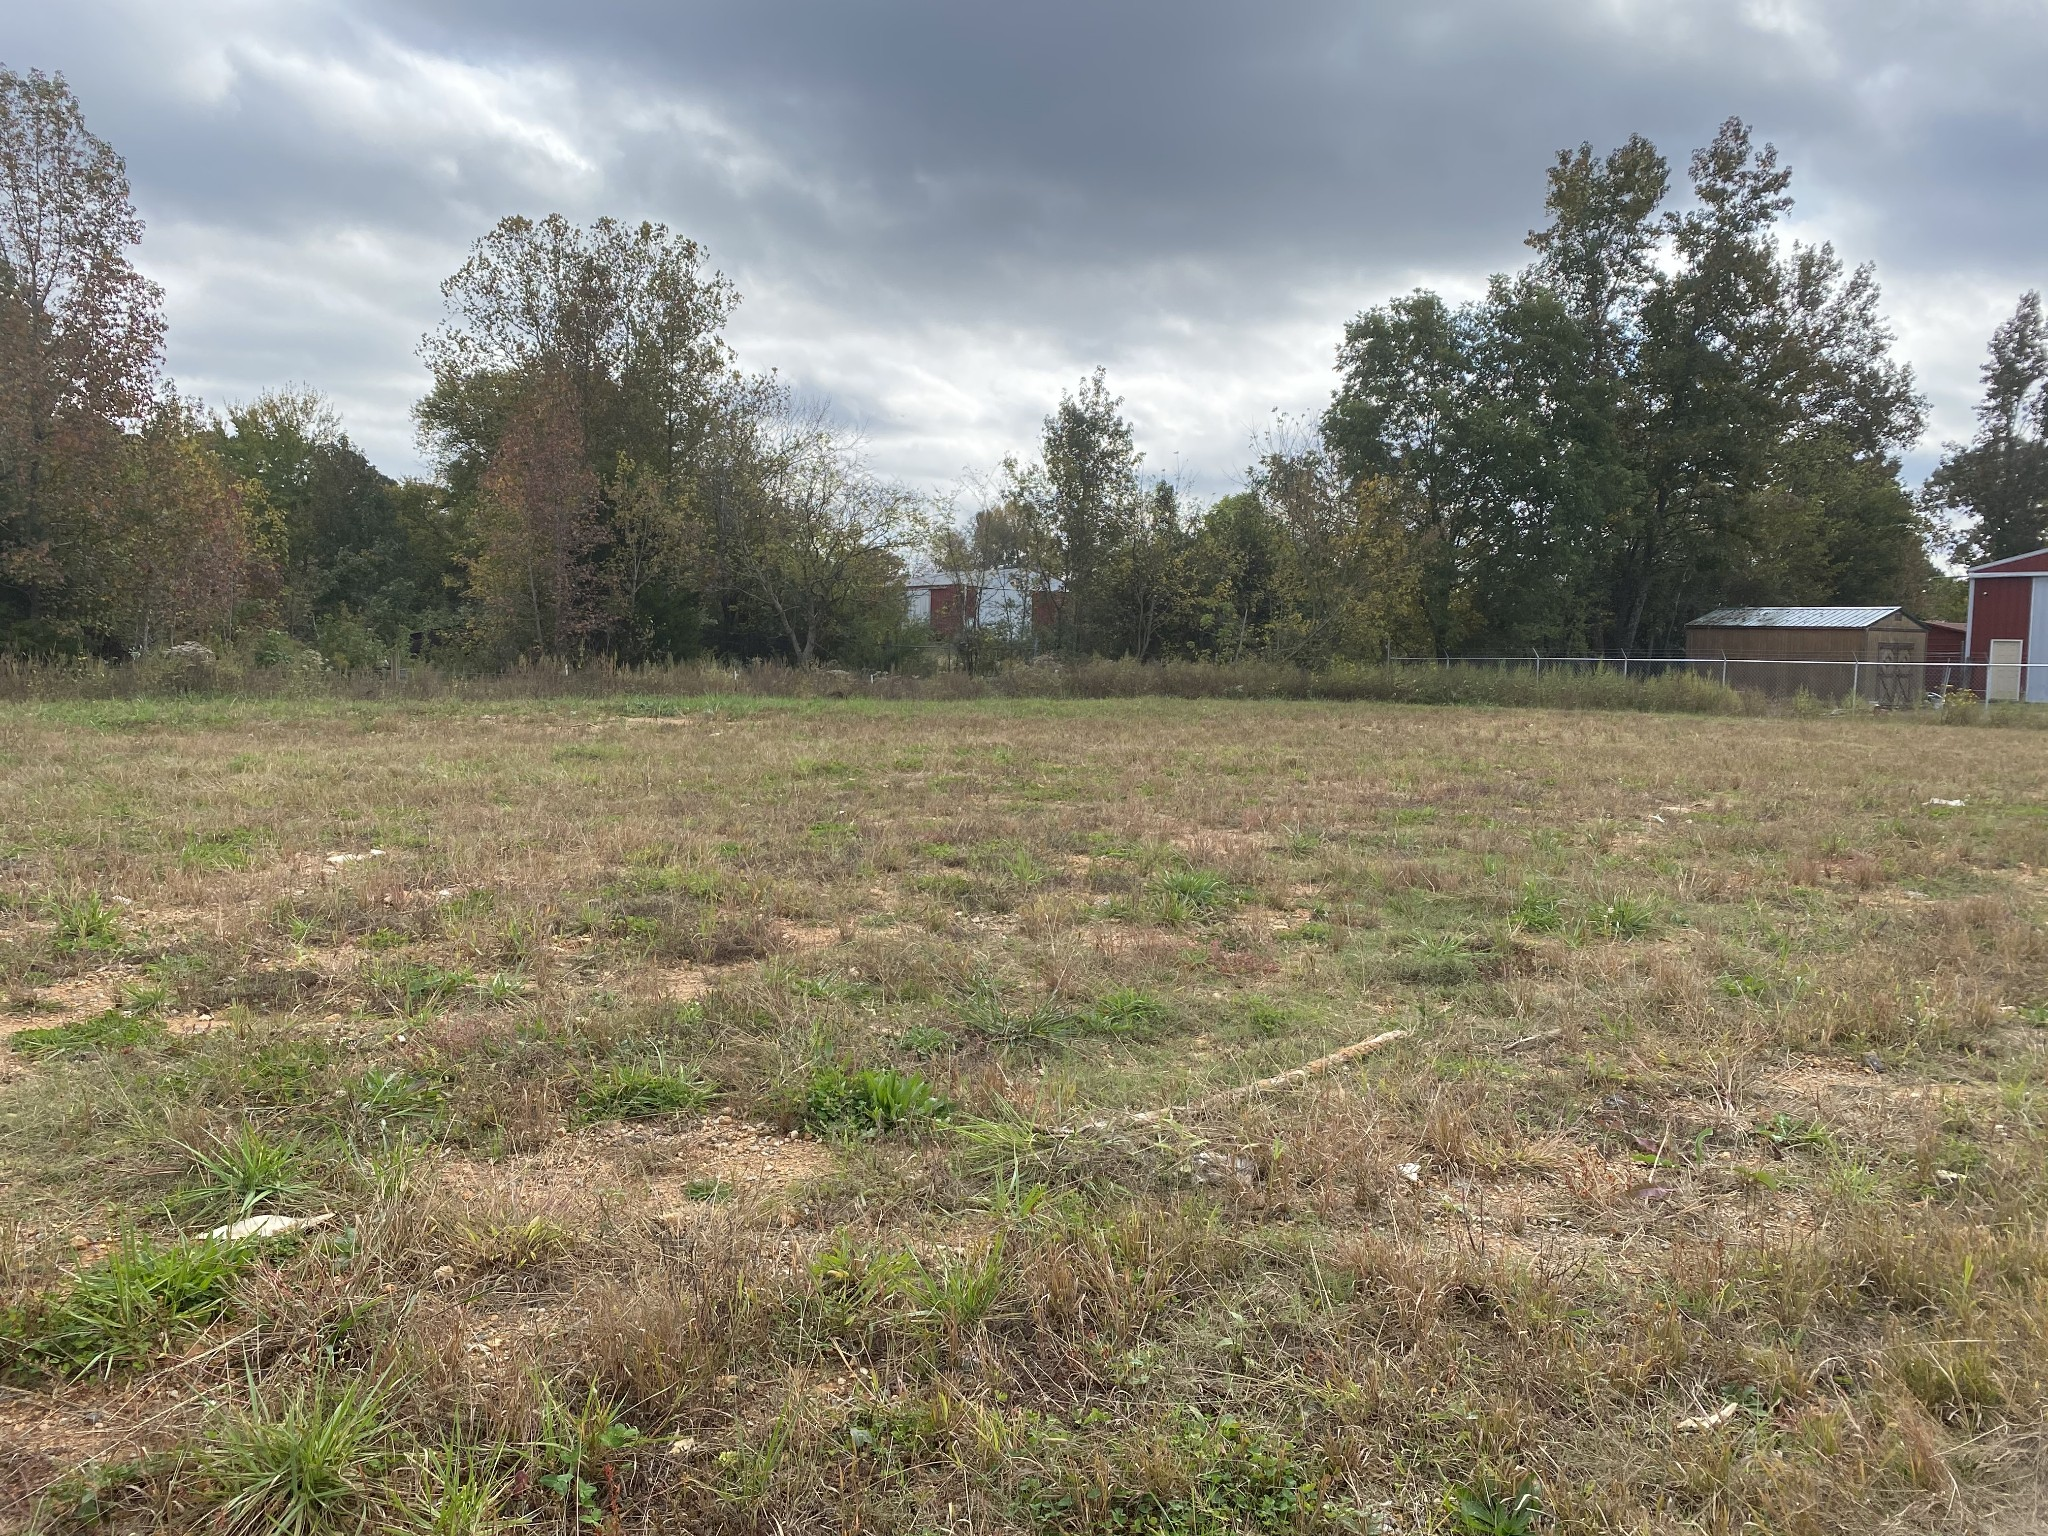 0 Gobble St, Lawrenceburg, Tennessee 38464, ,Lots And Land,For Sale,0 Gobble St,2200973